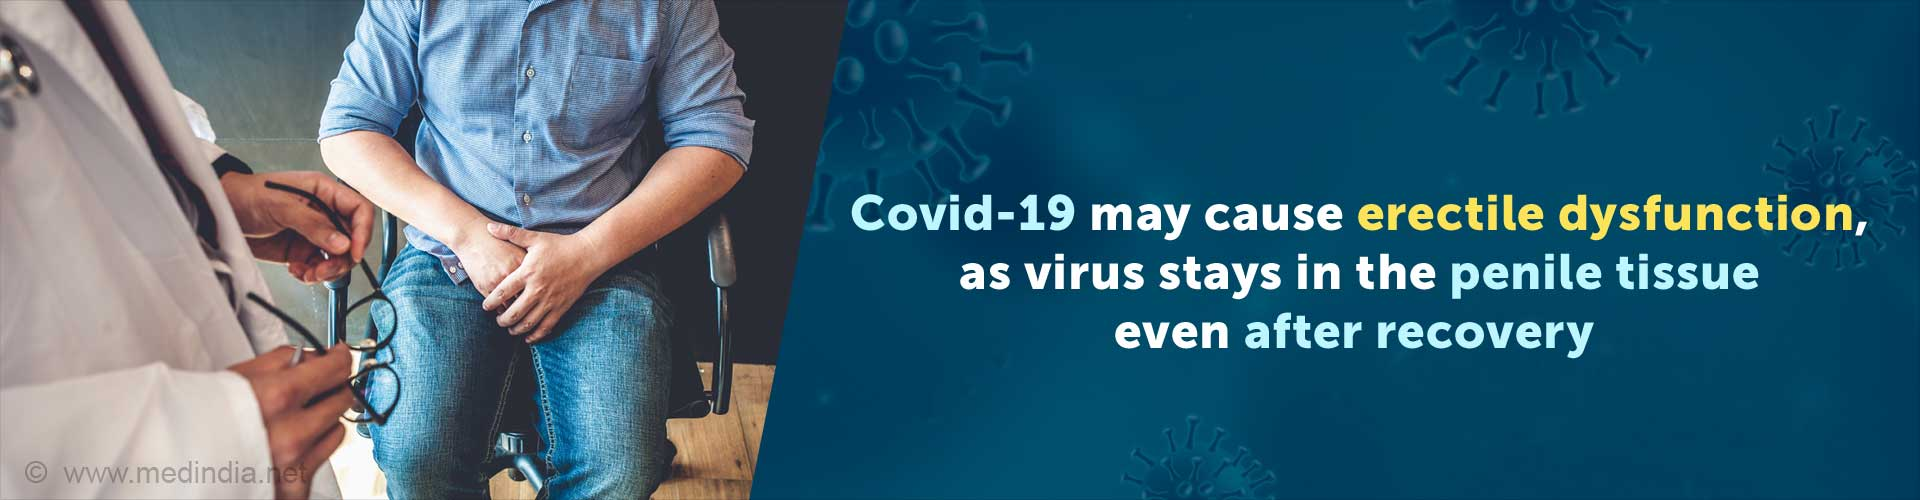 Covid-19 May Cause Erectile Dysfunction Even After Recovery